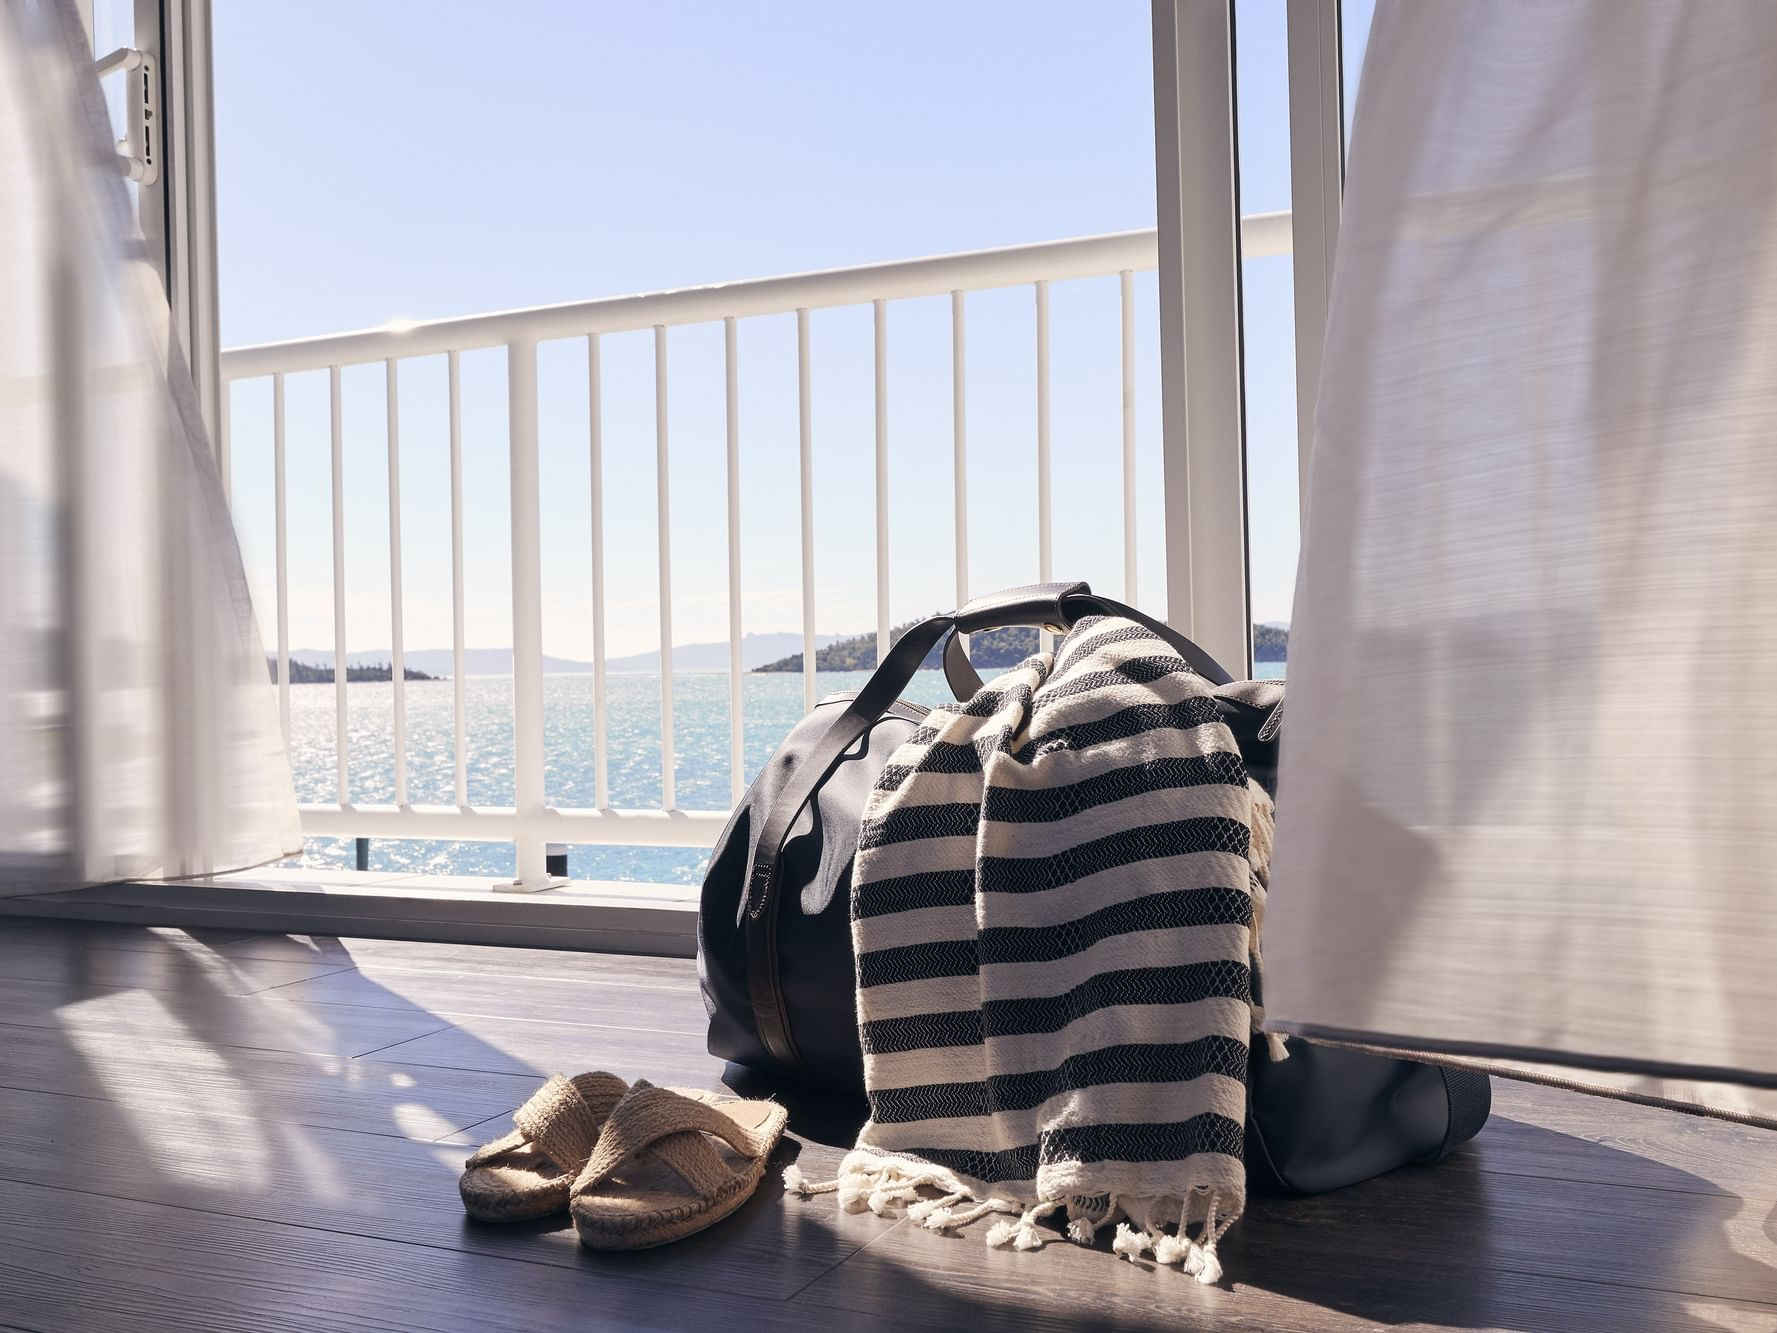 Tourist luggage in Superior room at Daydream Island Resort